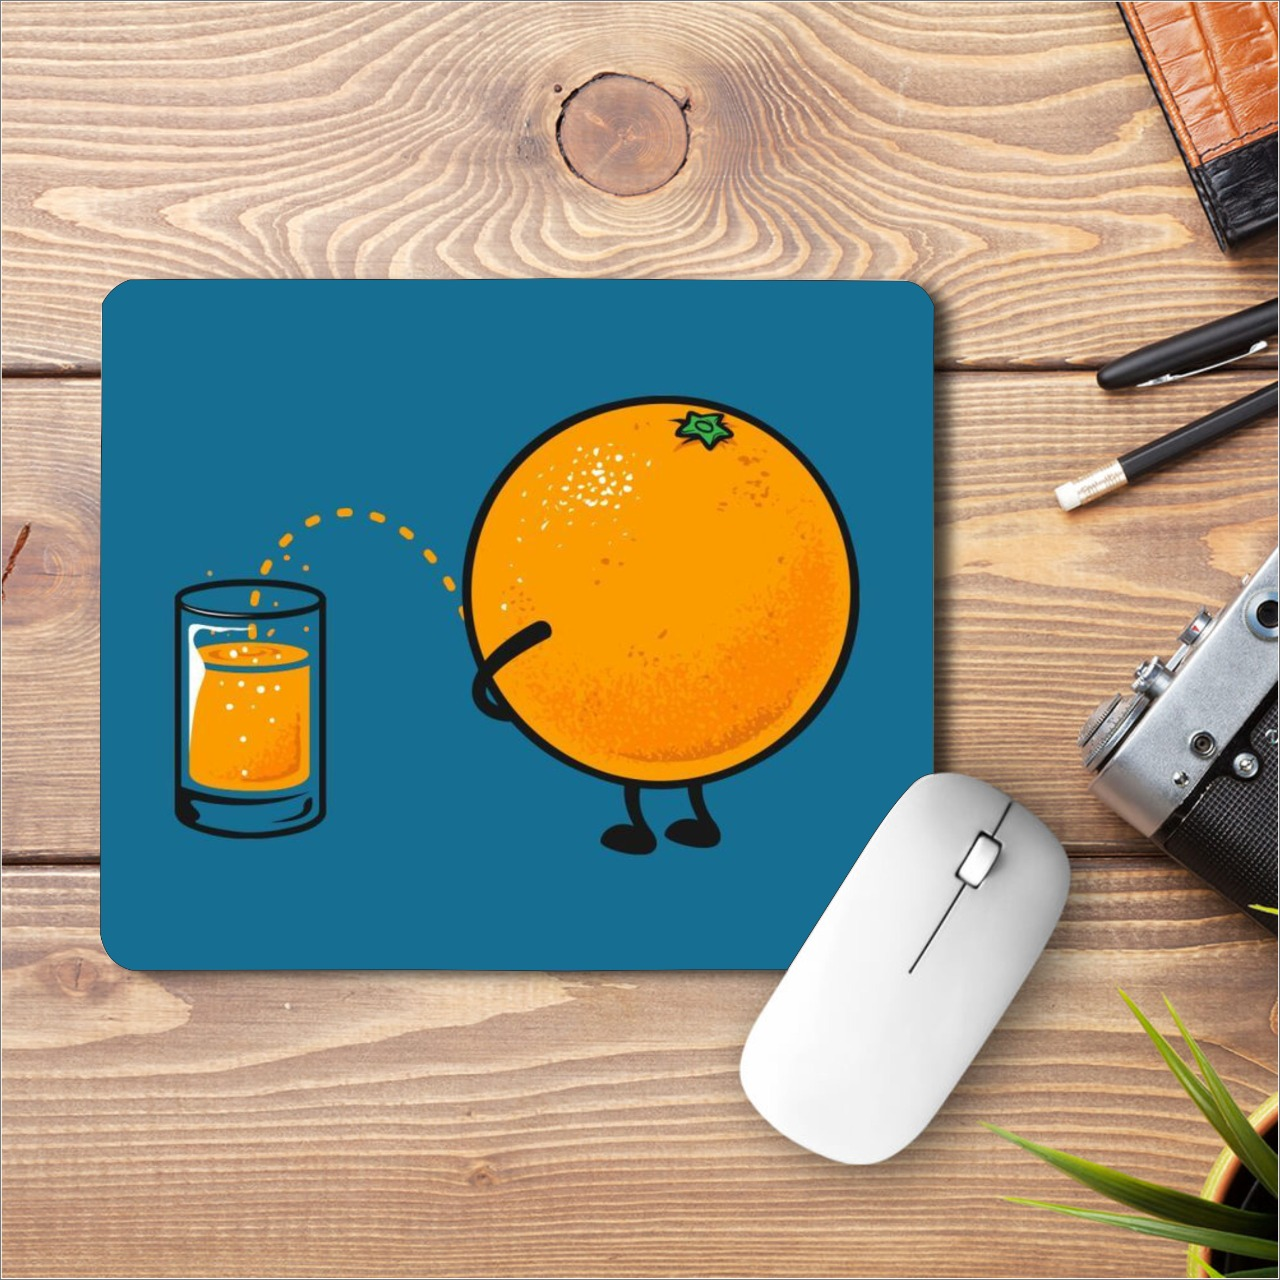 Funny Printed Mouse Pad|Funny Printed Mouse Pad|standard size 9 by 7 inch